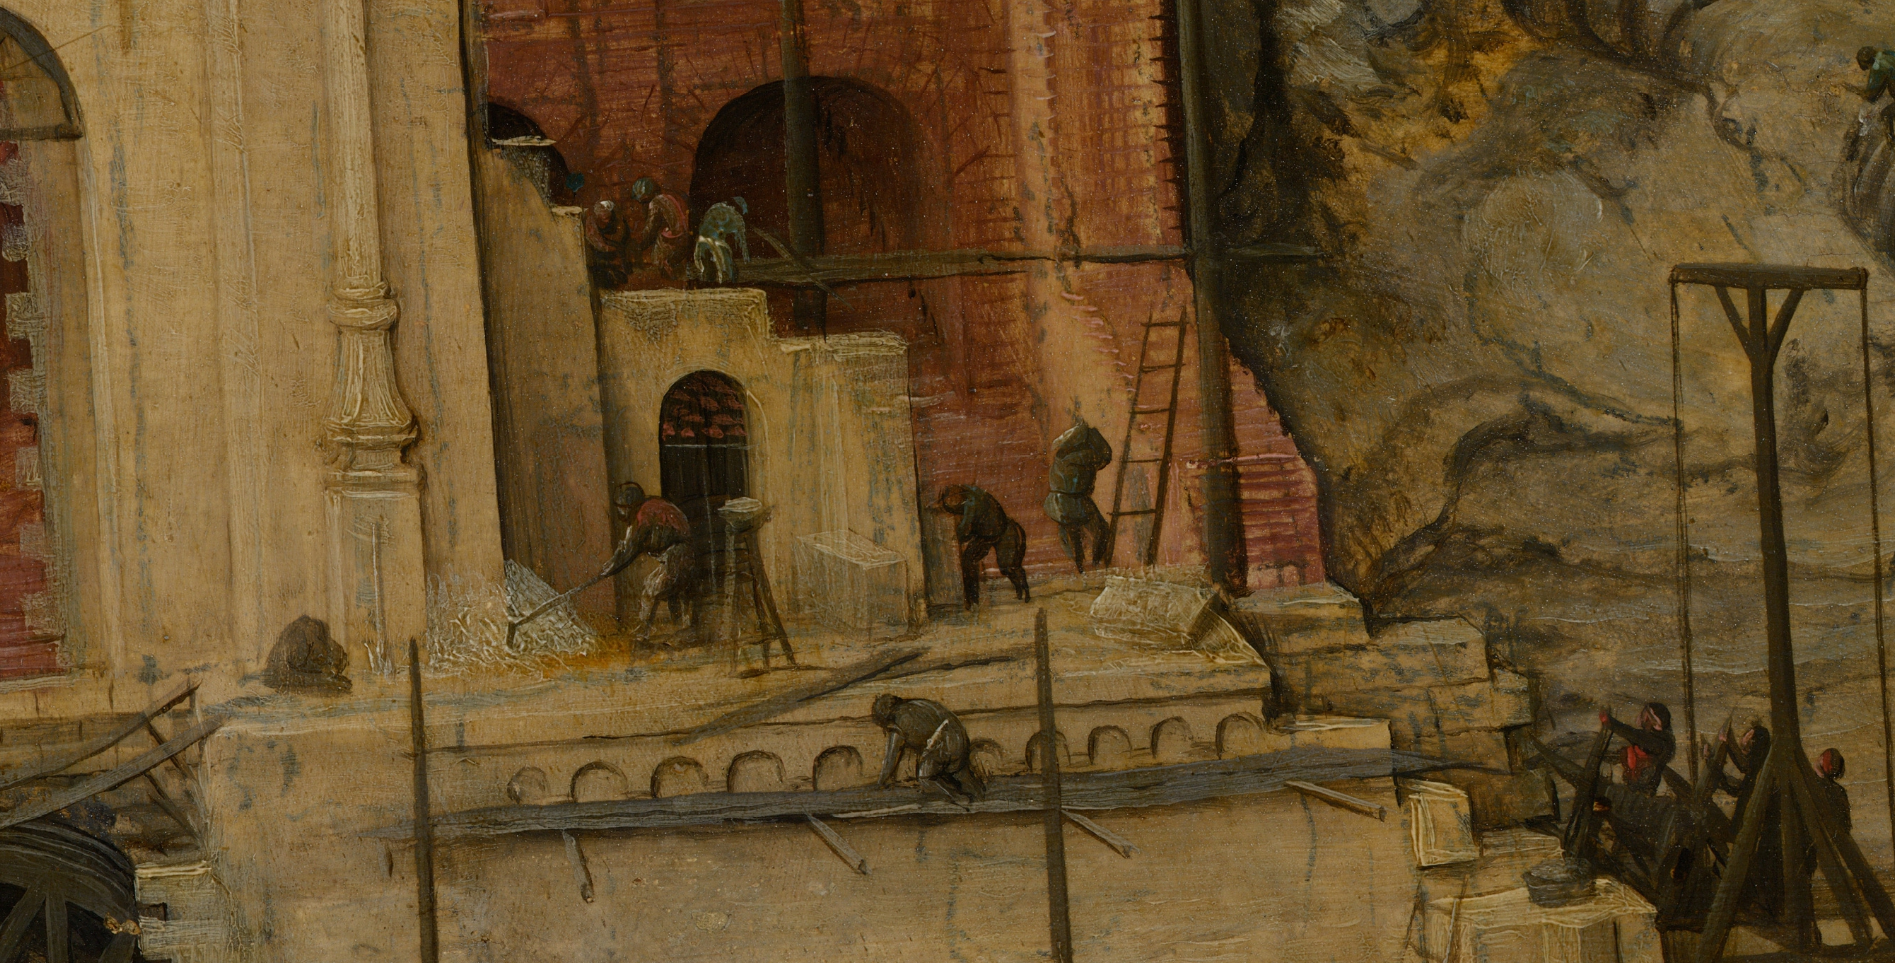 Pieter Bruegel, the Elder's painting The Tower of Babel in zoom view. Close up view of workers on the tower.